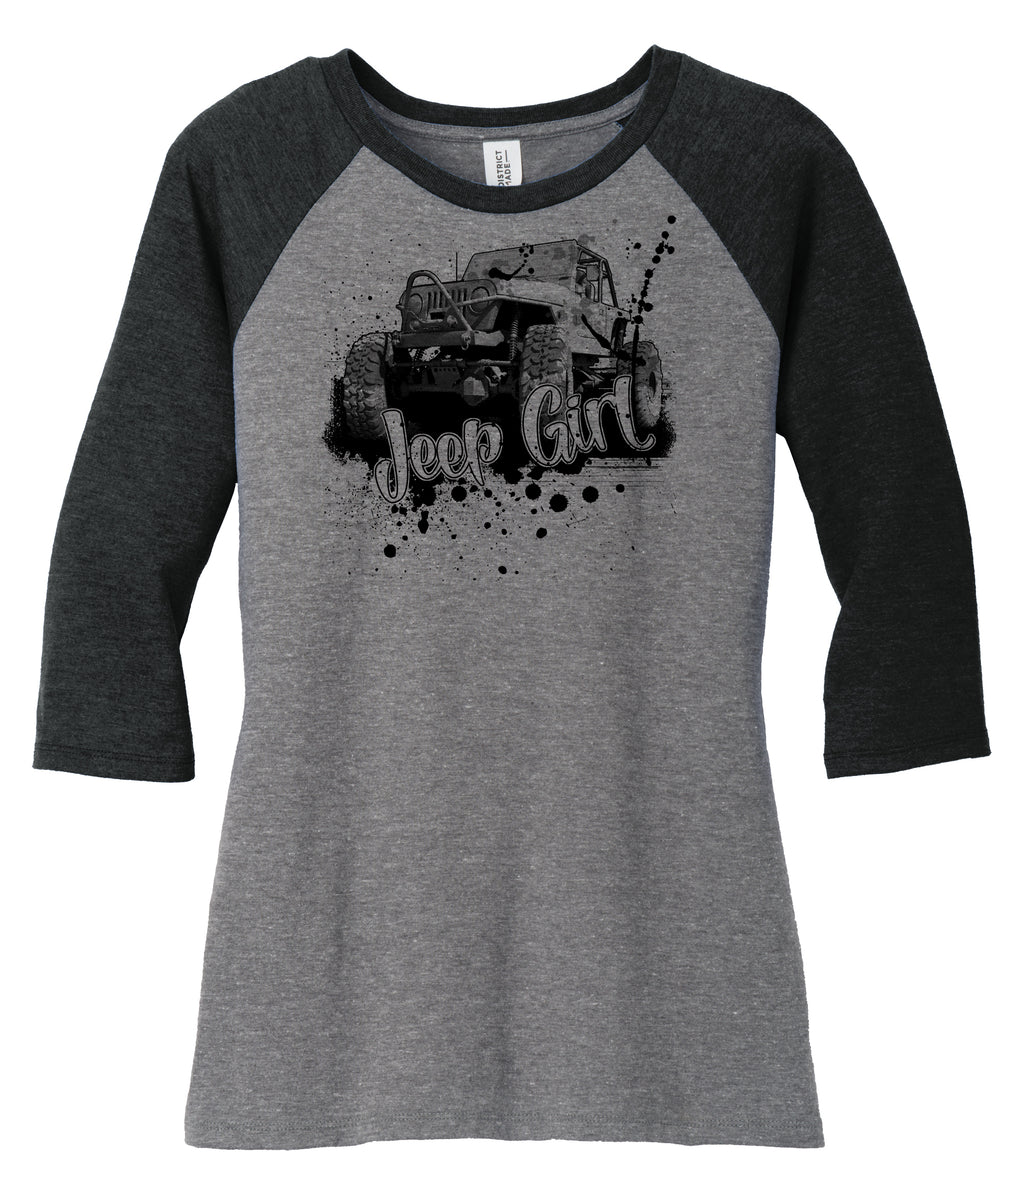 Jeep Girl, Soft & Comfy Ladies Raglan Tee - Florida Native